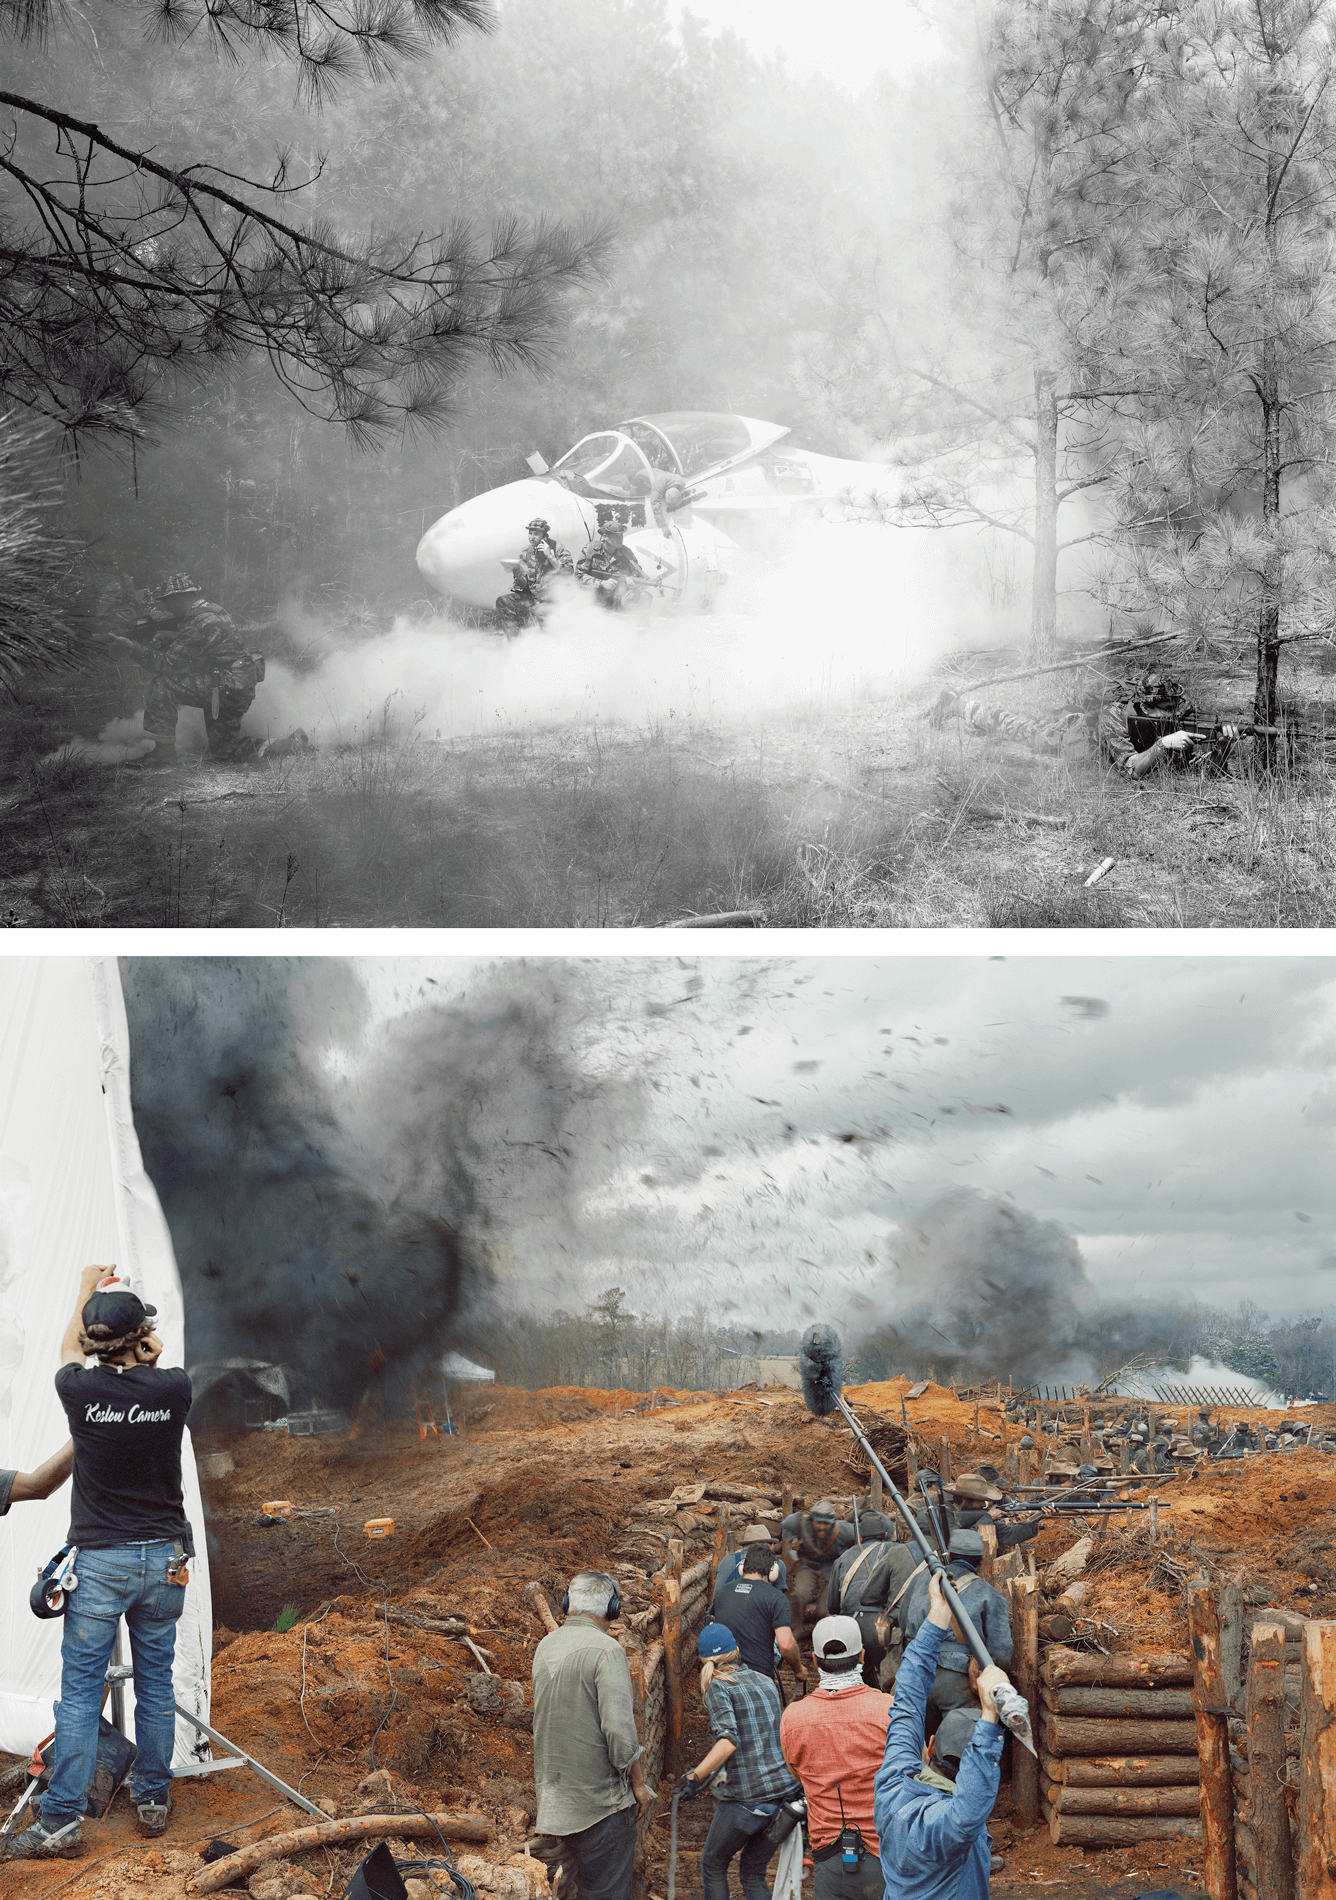 On the top is a black and white photograph of a Vietnam War era aircraft on fire. Below it is a photograph of a film set of a Civil War-era movie.